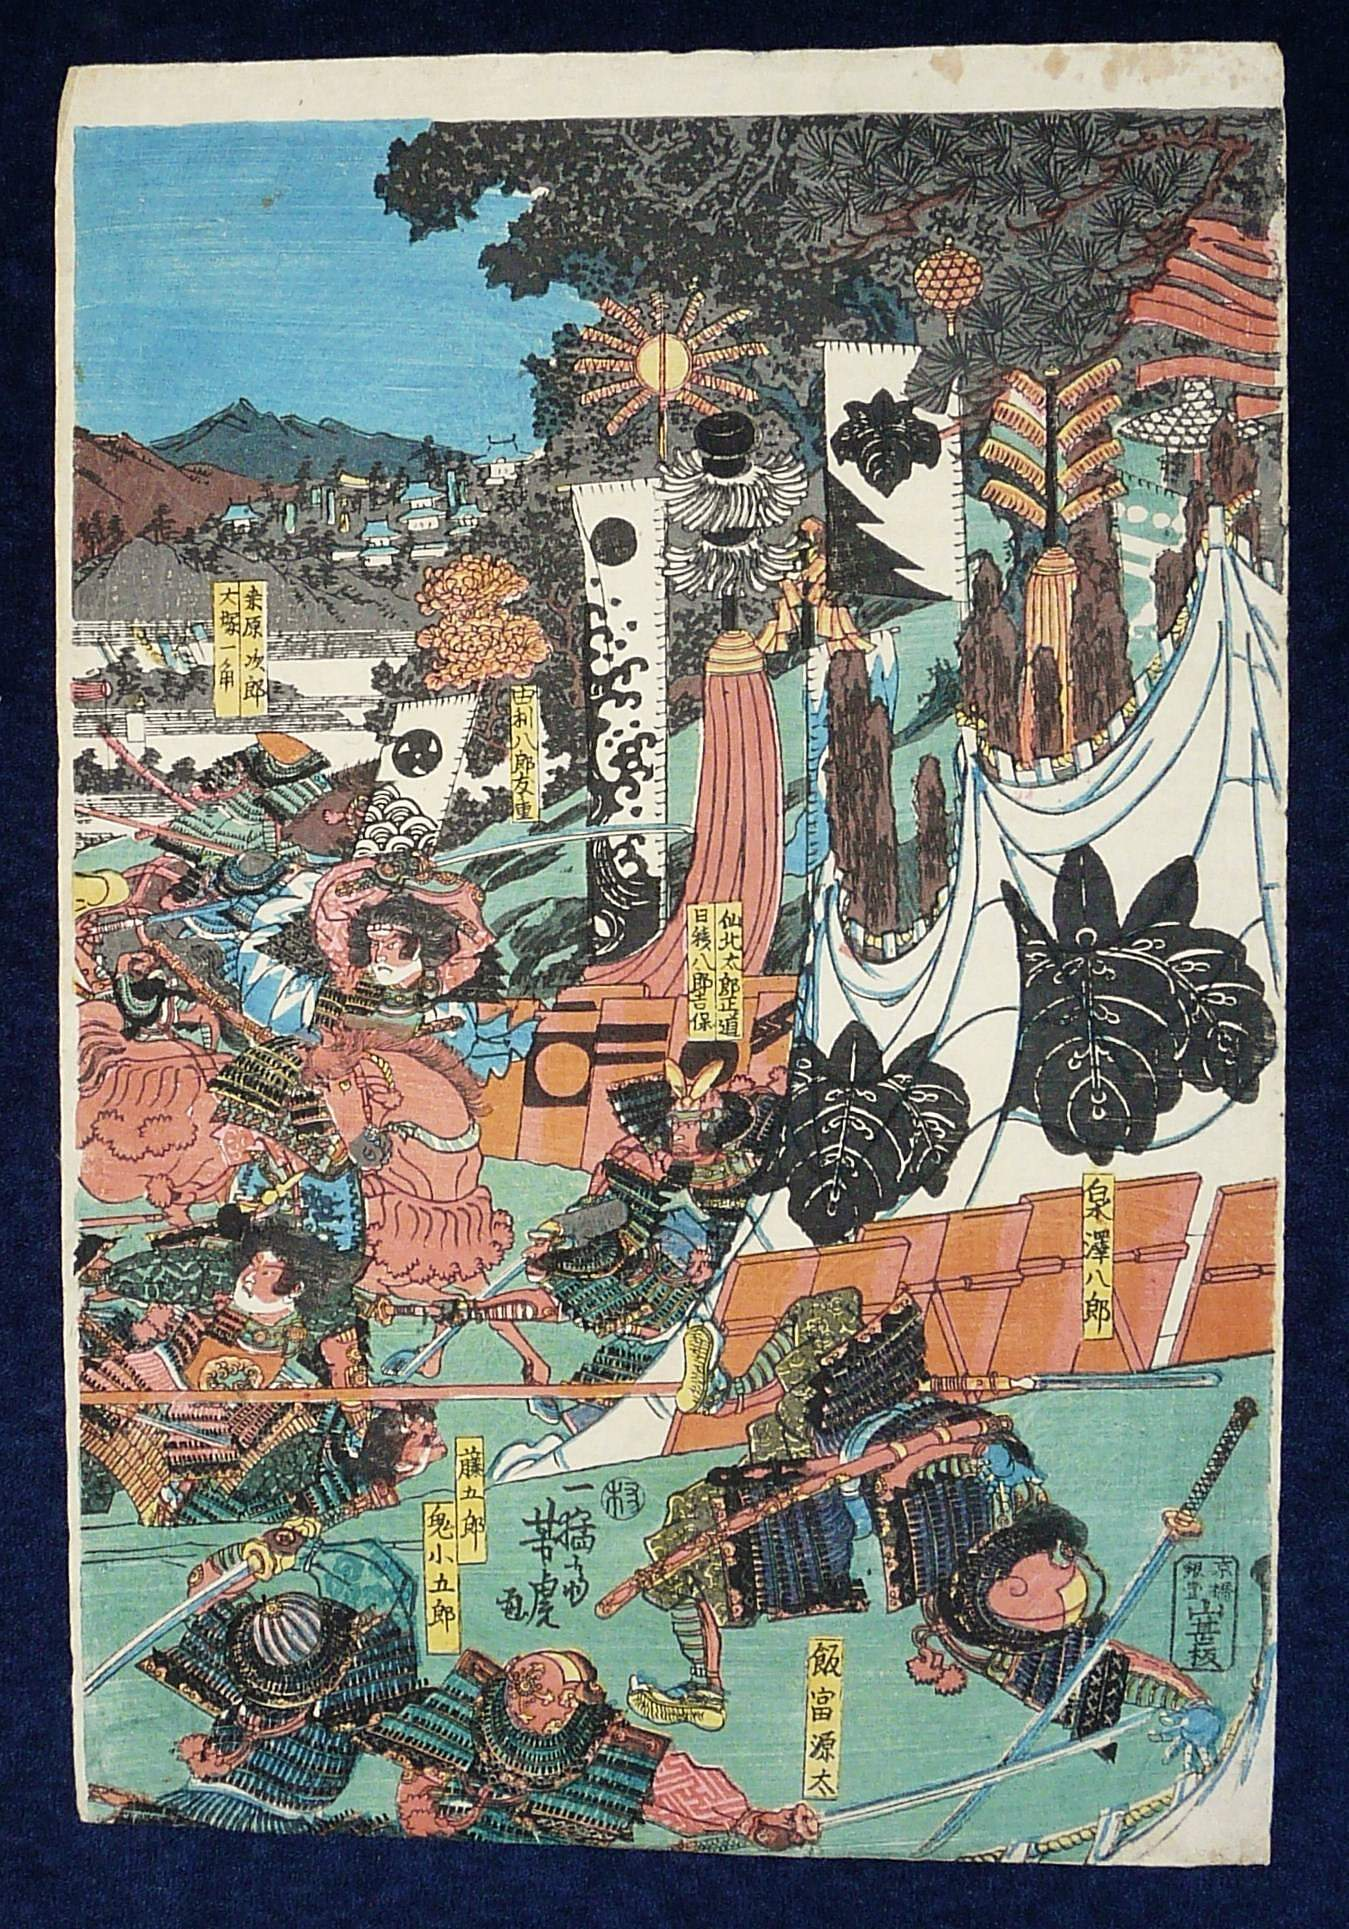 UTAGAWA YOSHITORA: #P3868 VERY RARE EARLY SAMURAI BATTLE SCENE CREATED 1840's